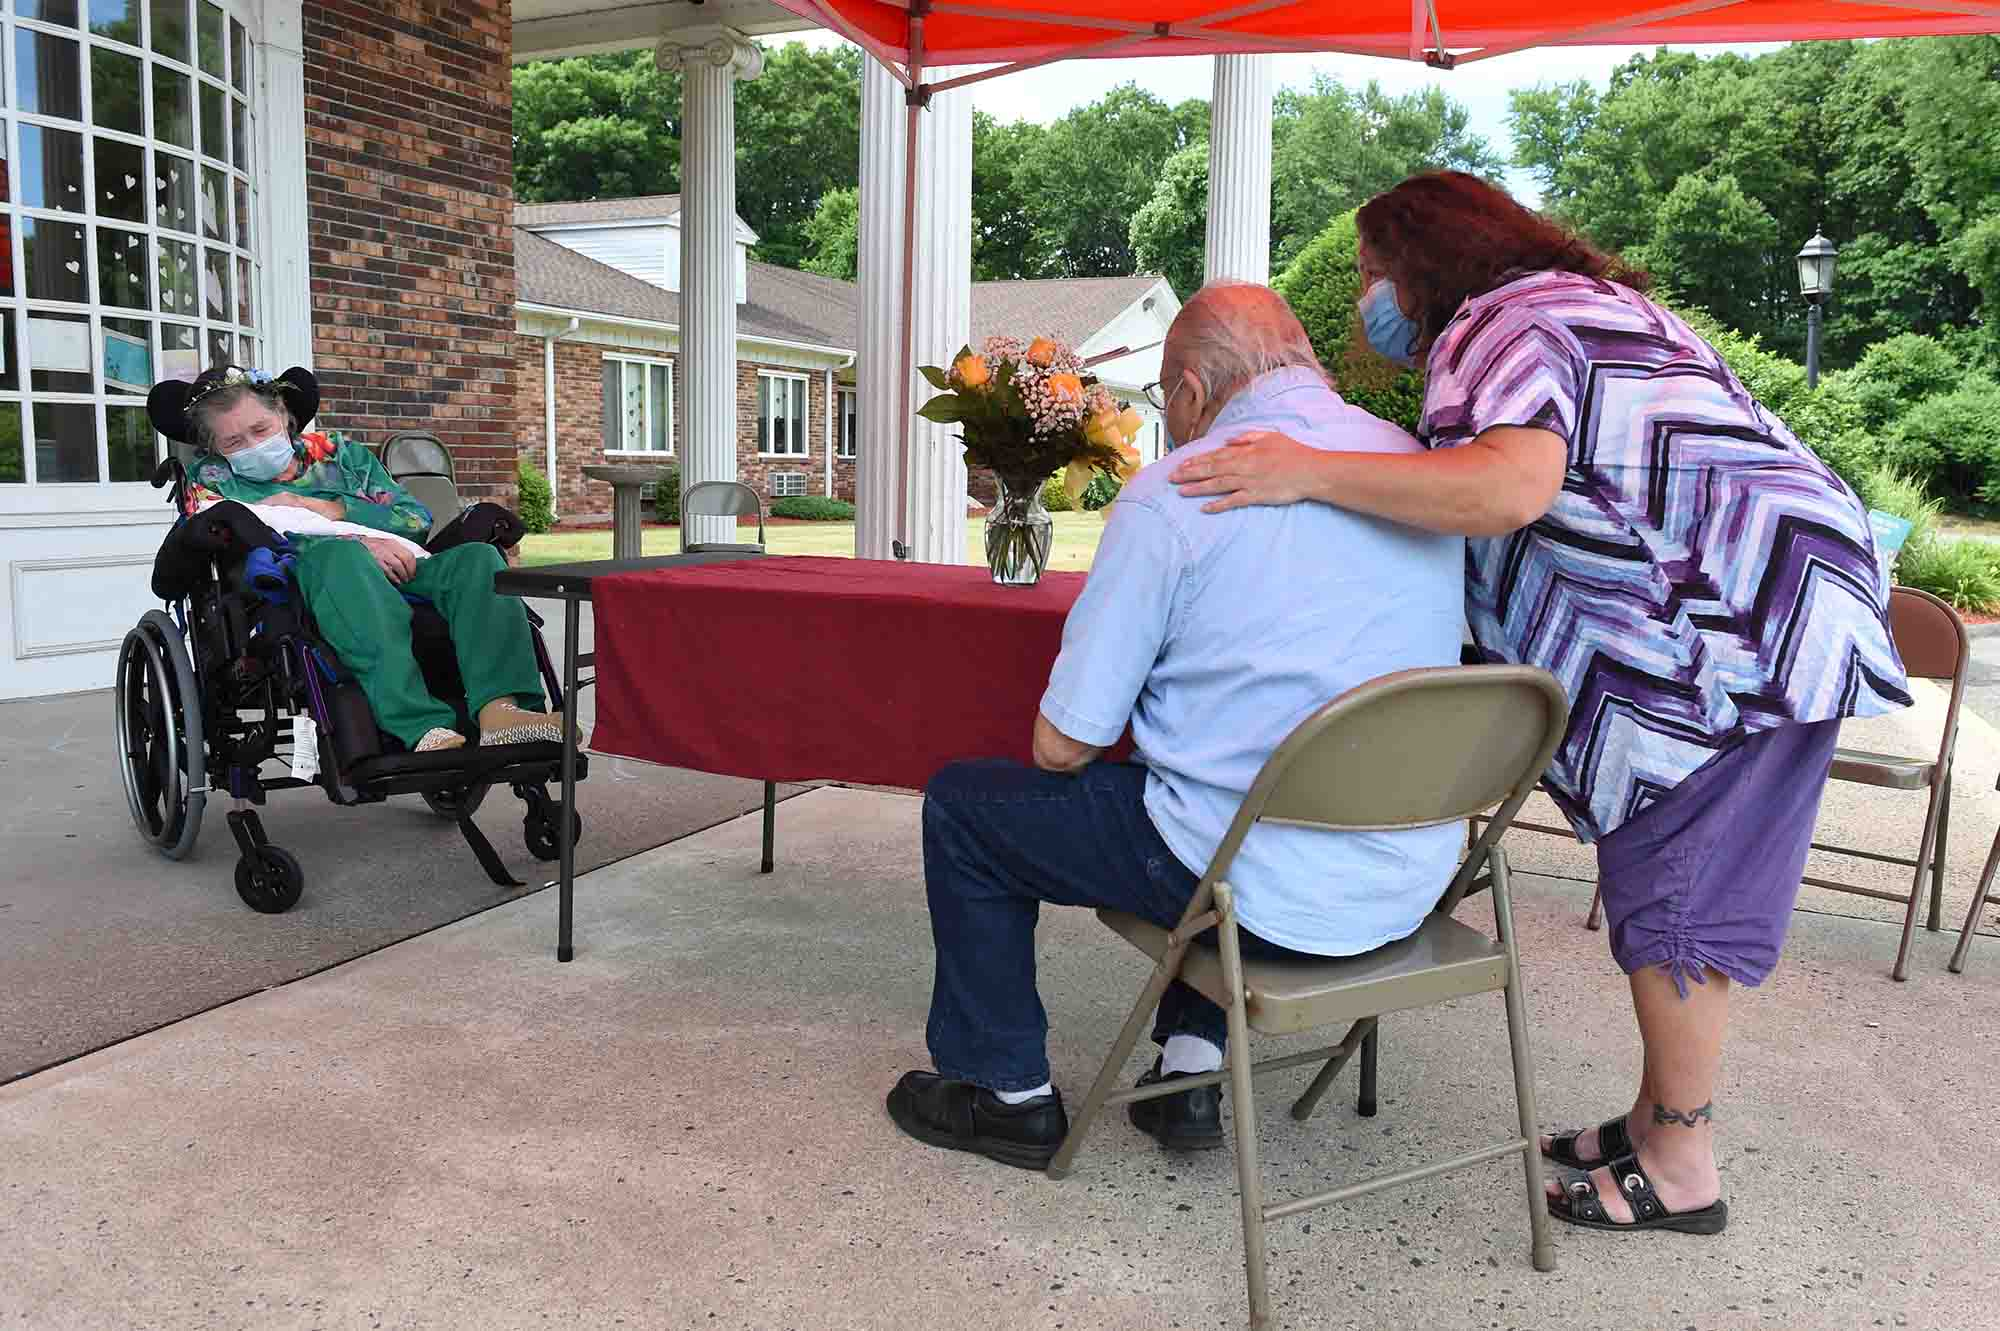 With COVID-19 cases rising in CT, some nursing homes are now requiring visitor testing